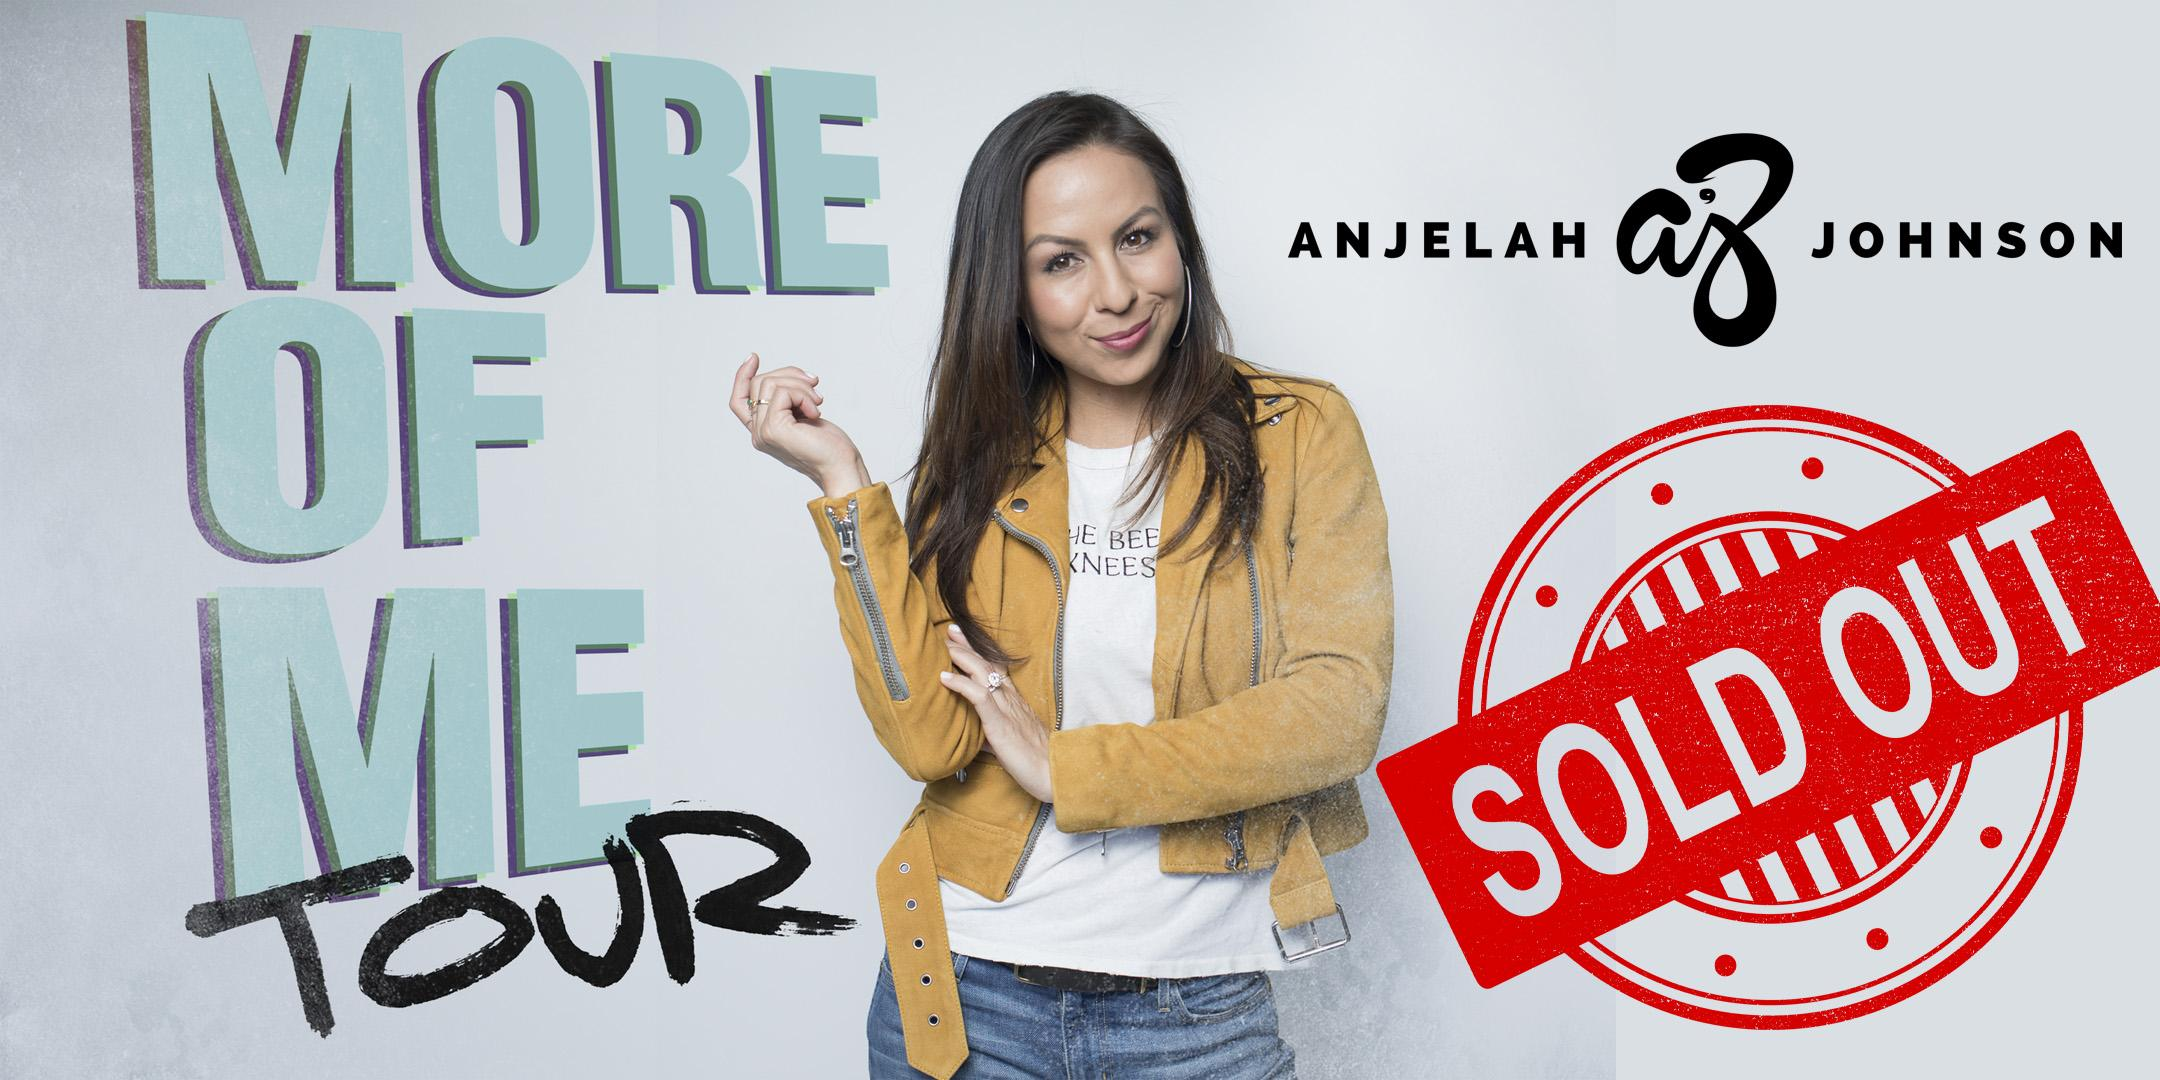 Anjelah Johnson - Saturday - March 2nd - 7:30 & 9:45 pm SOLD OUT